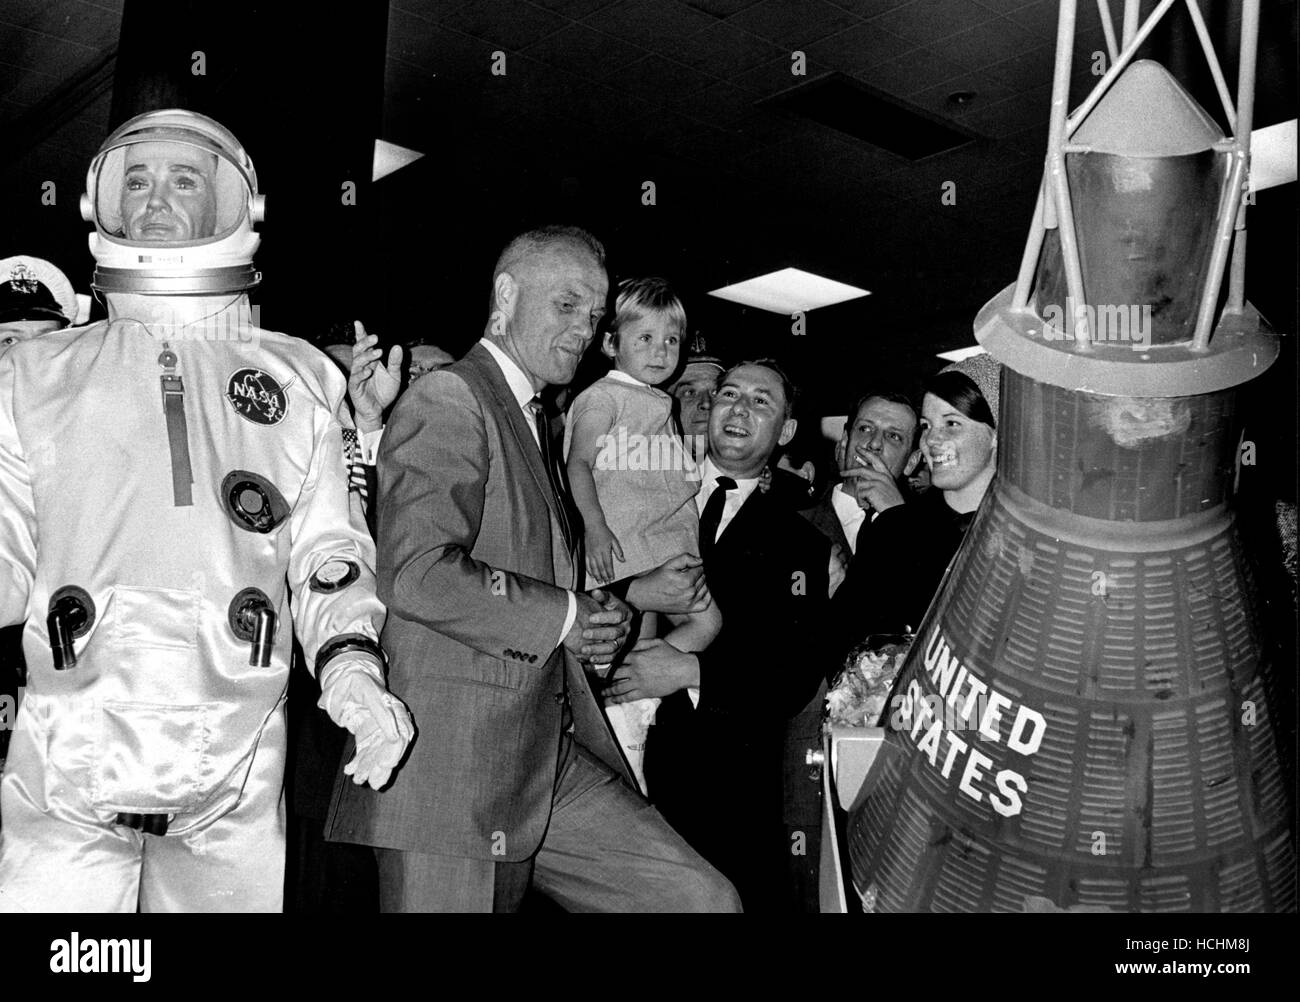 December 8, 2016 - (File Photo) - John Glenn, the first American to orbit the Earth and a former U.S. senator and - Stock Image